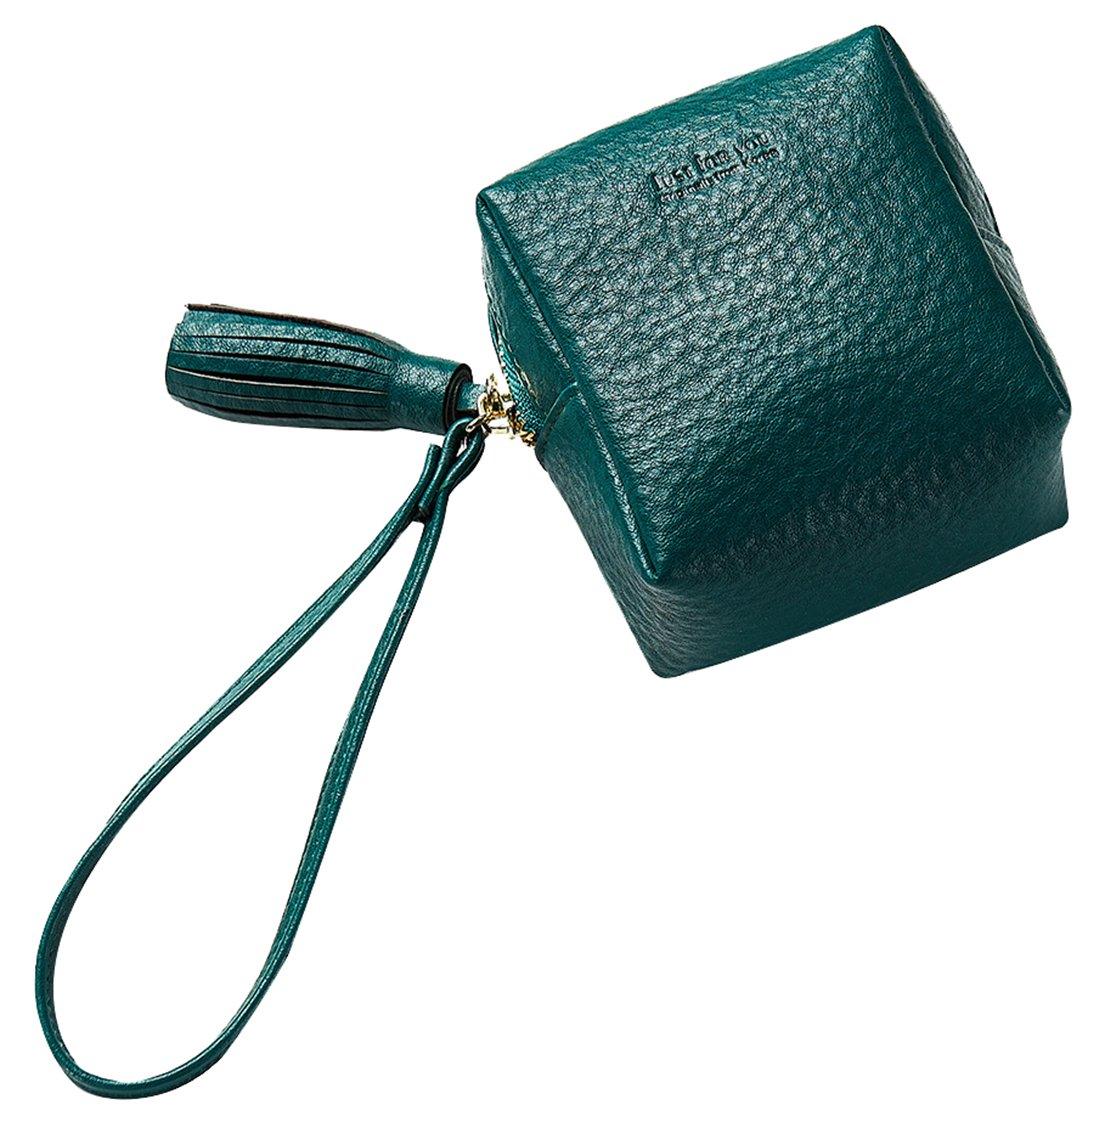 FEMAROLY Geunine Leather Female Handbags Skull Wallet Large-capacity Coin Pokect Cute Mini Purse With Wrist Strap Credit card Clutch for Women and Girls Dark Green